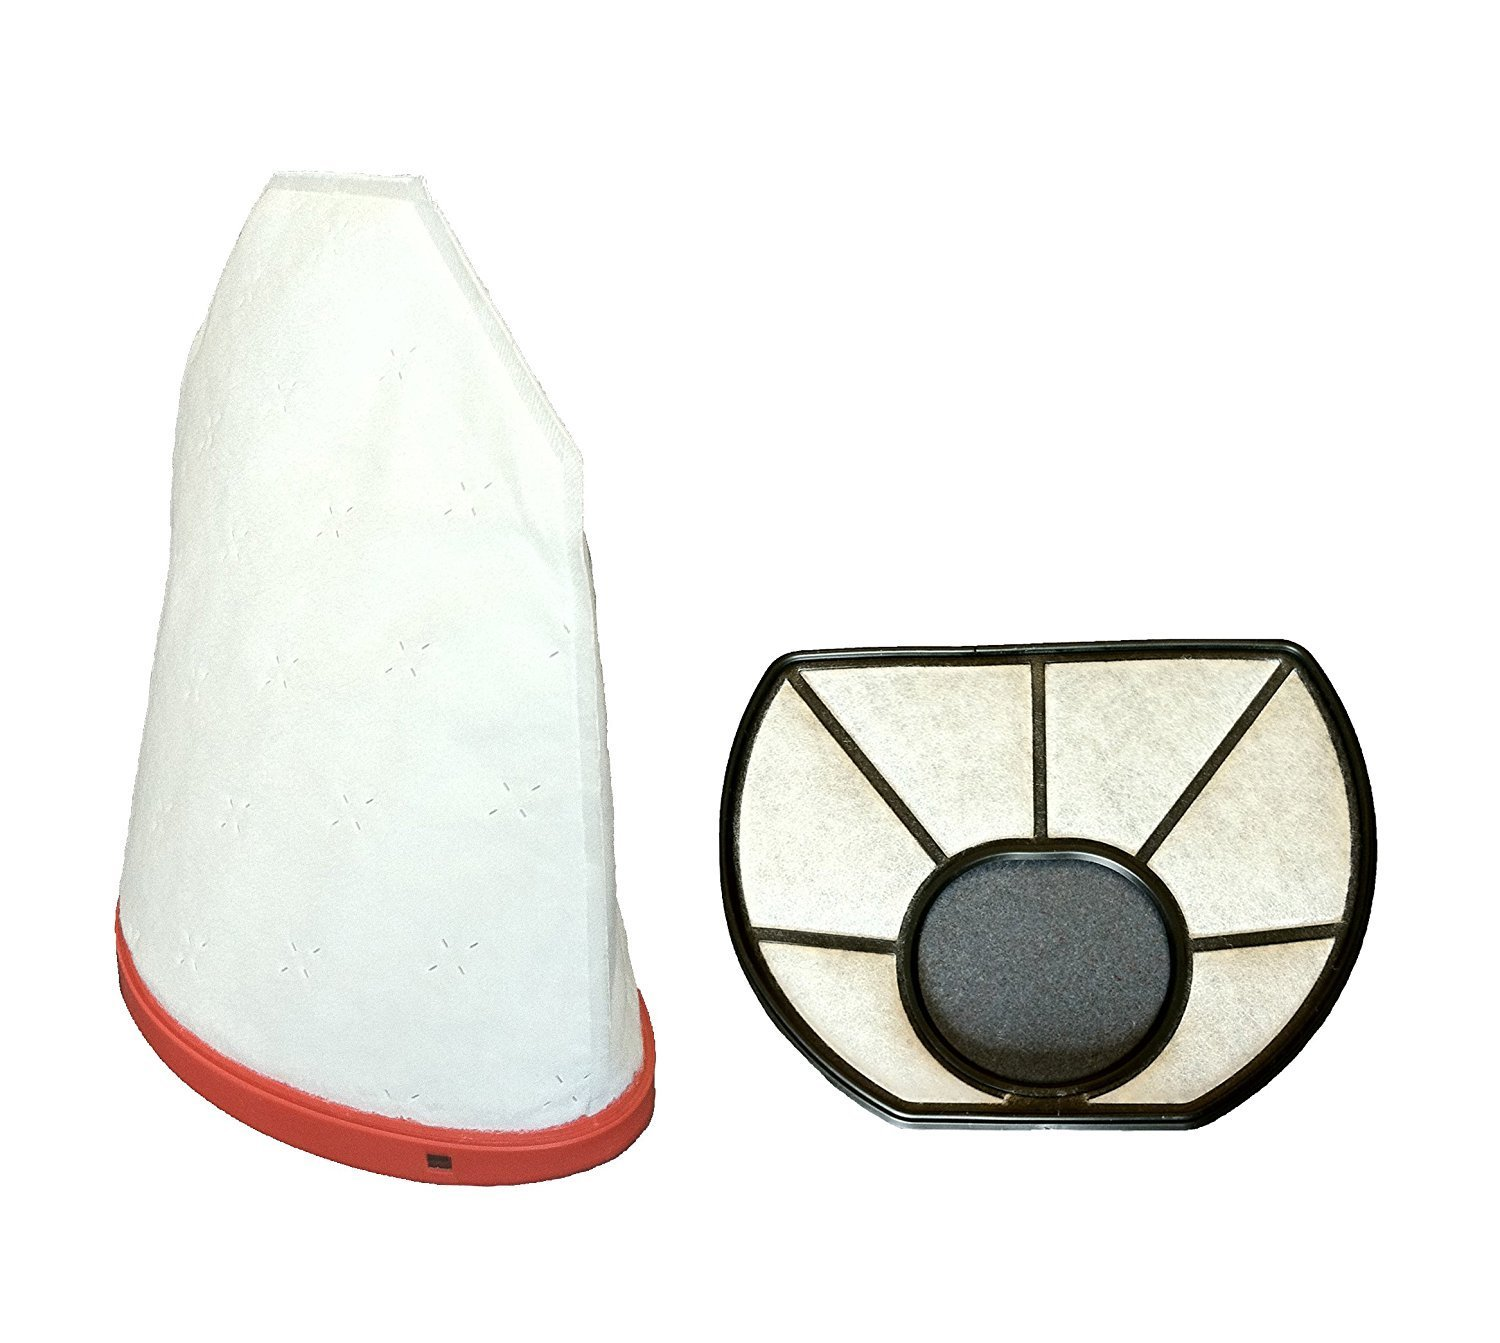 Sebo Filter Set - D4 (1 motor protection and 1 micro exhaust) 8191AM